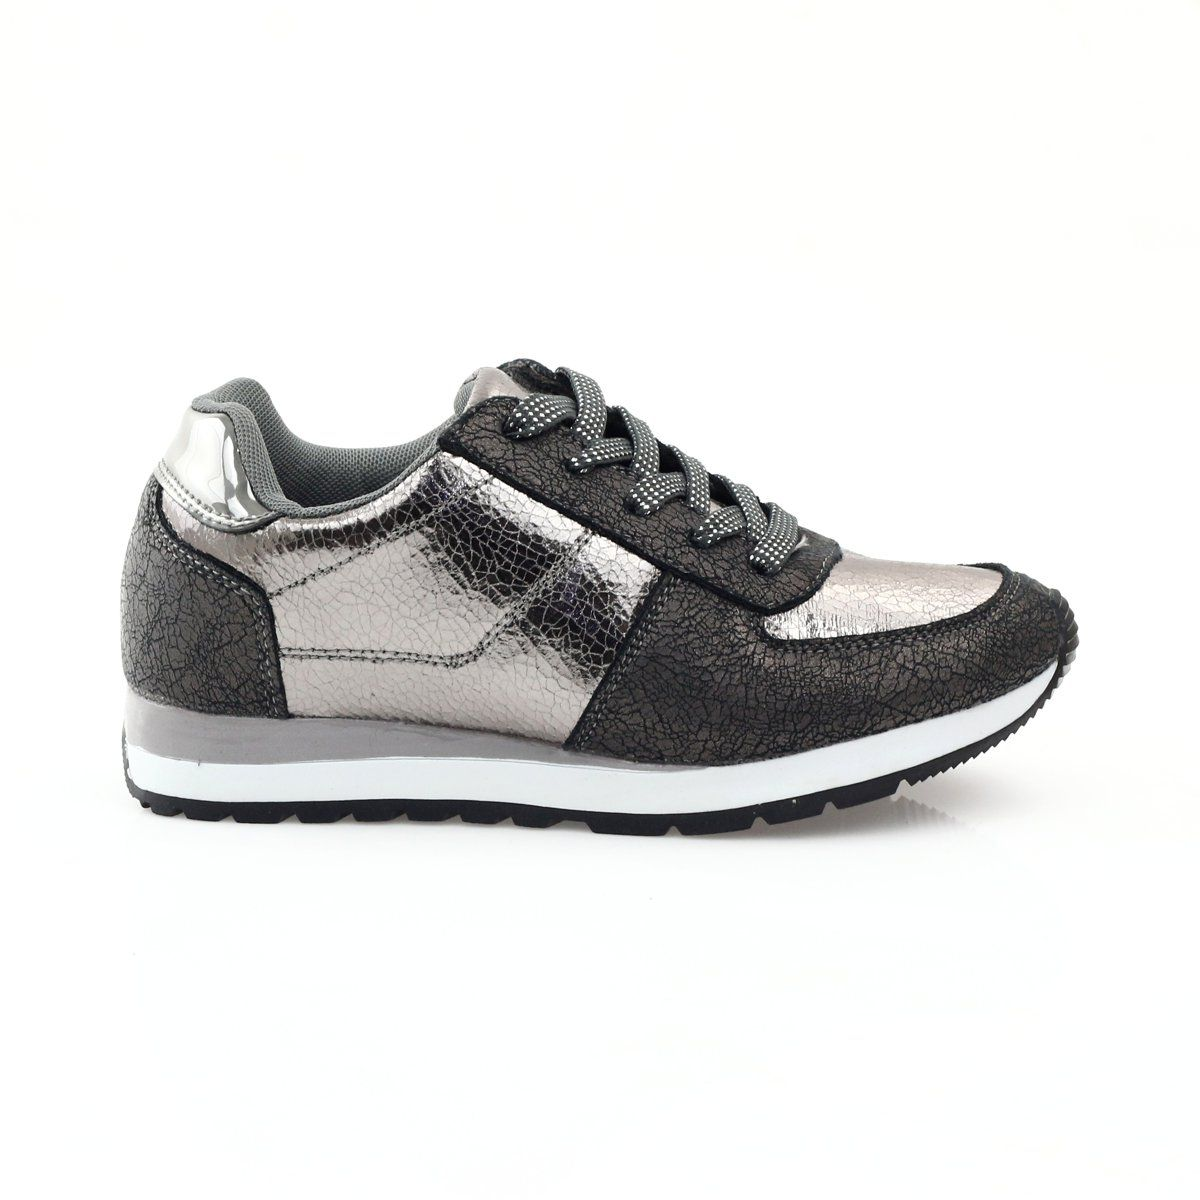 Mcarthur Copper Sports Shoes Grey Sports Shoes Womens Running Shoes Shoes